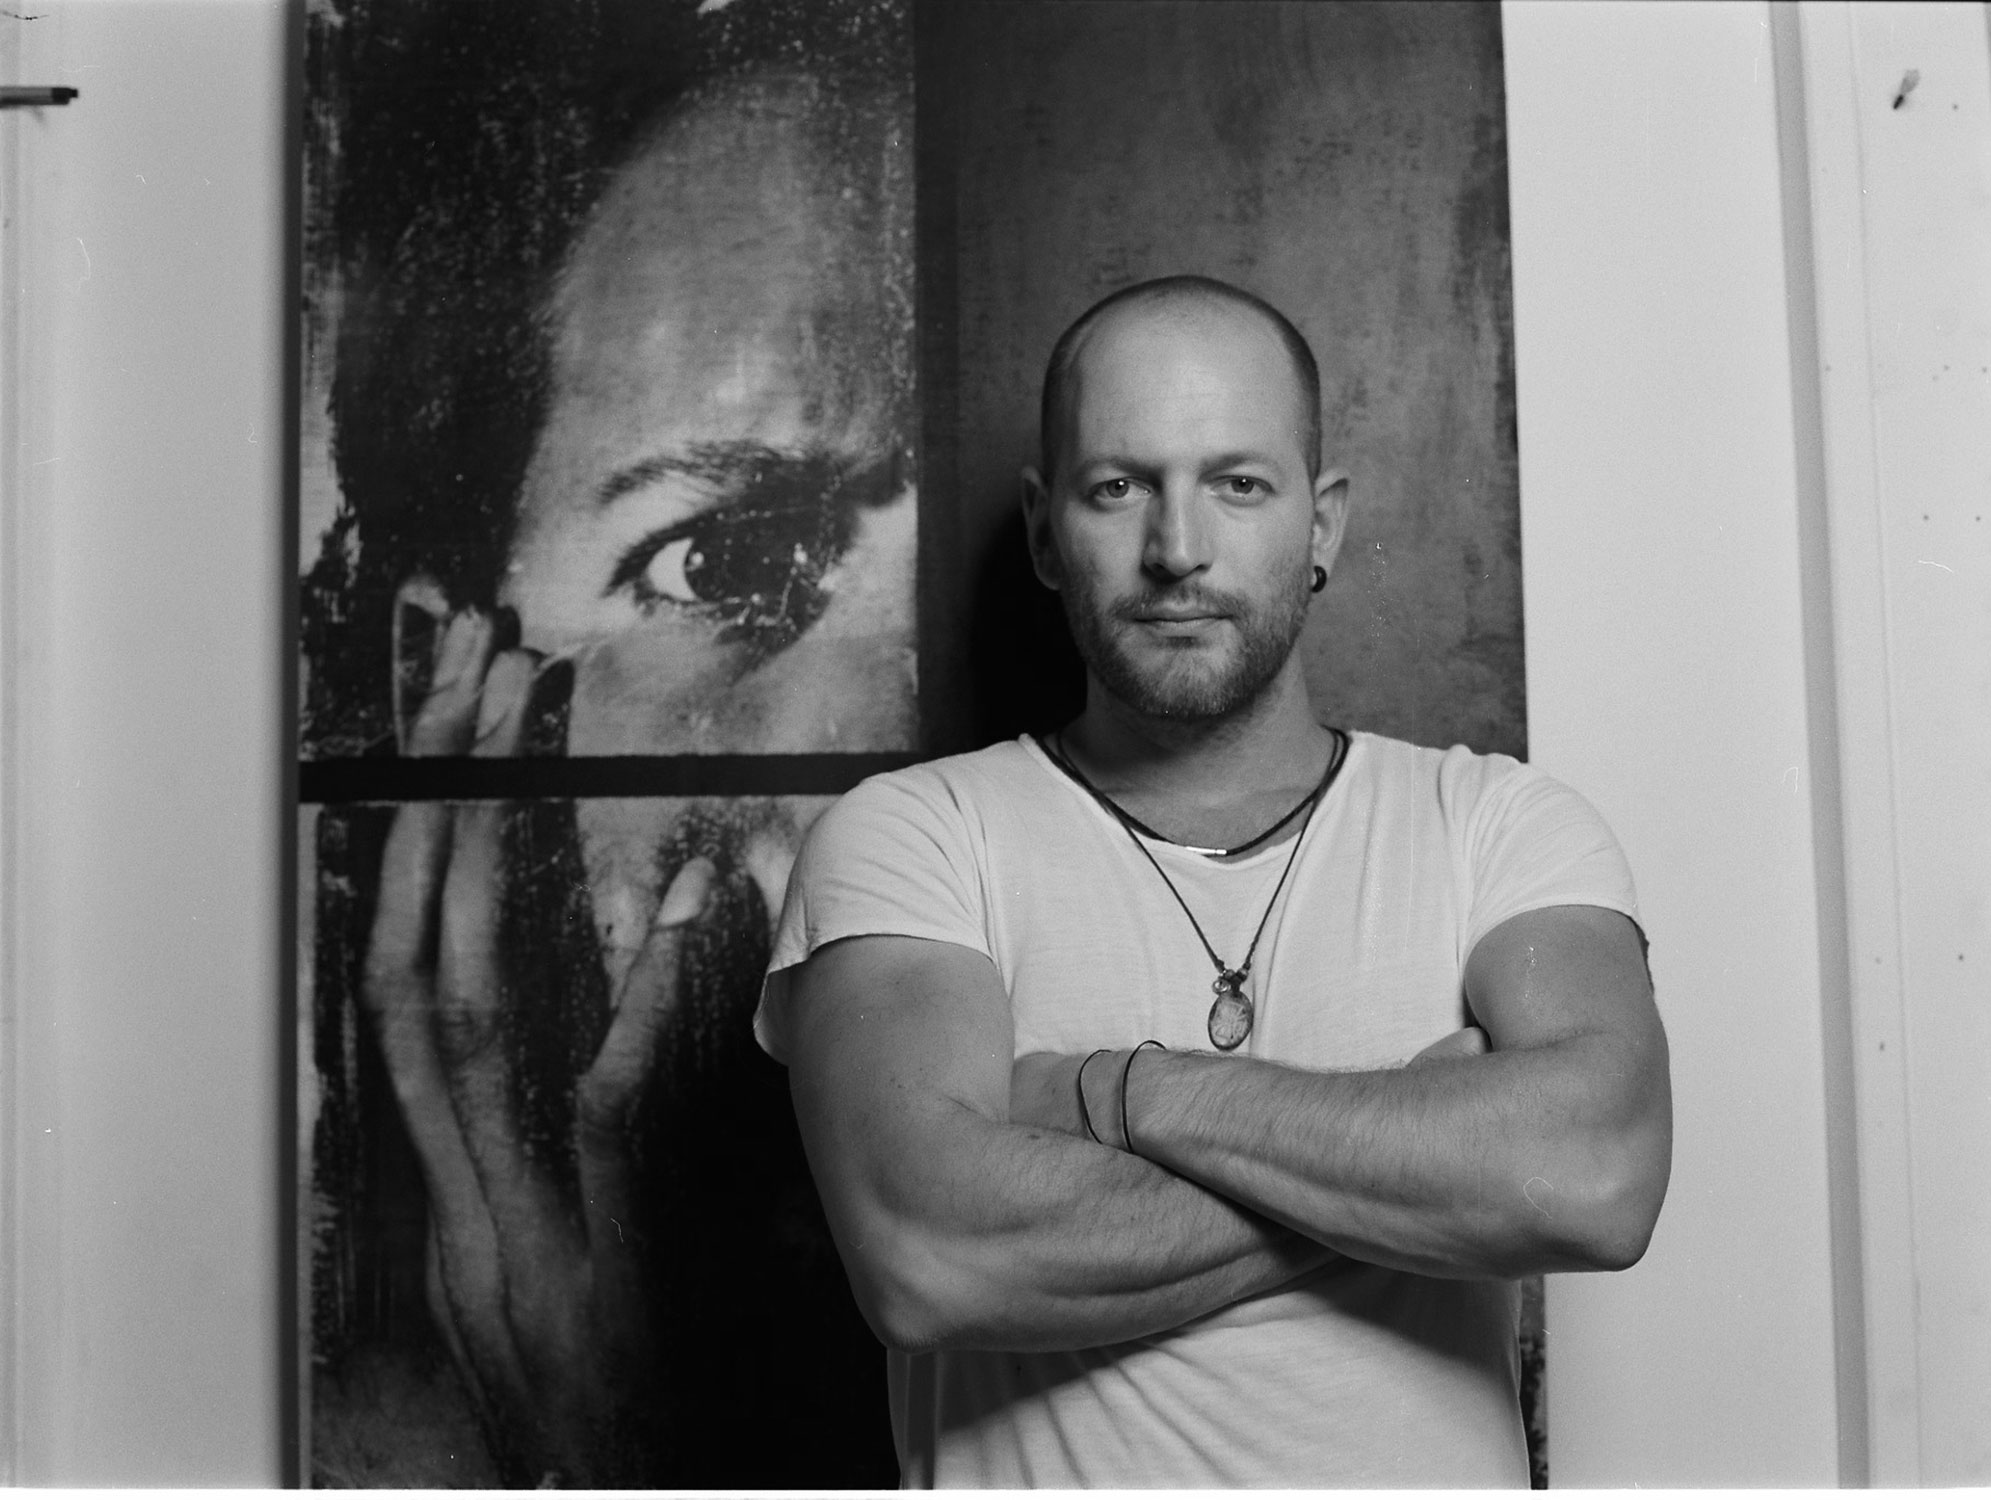 Mauro standing in fron of his self portrait. He taught me ALL I KNOW about medium format film. Thank you pal!